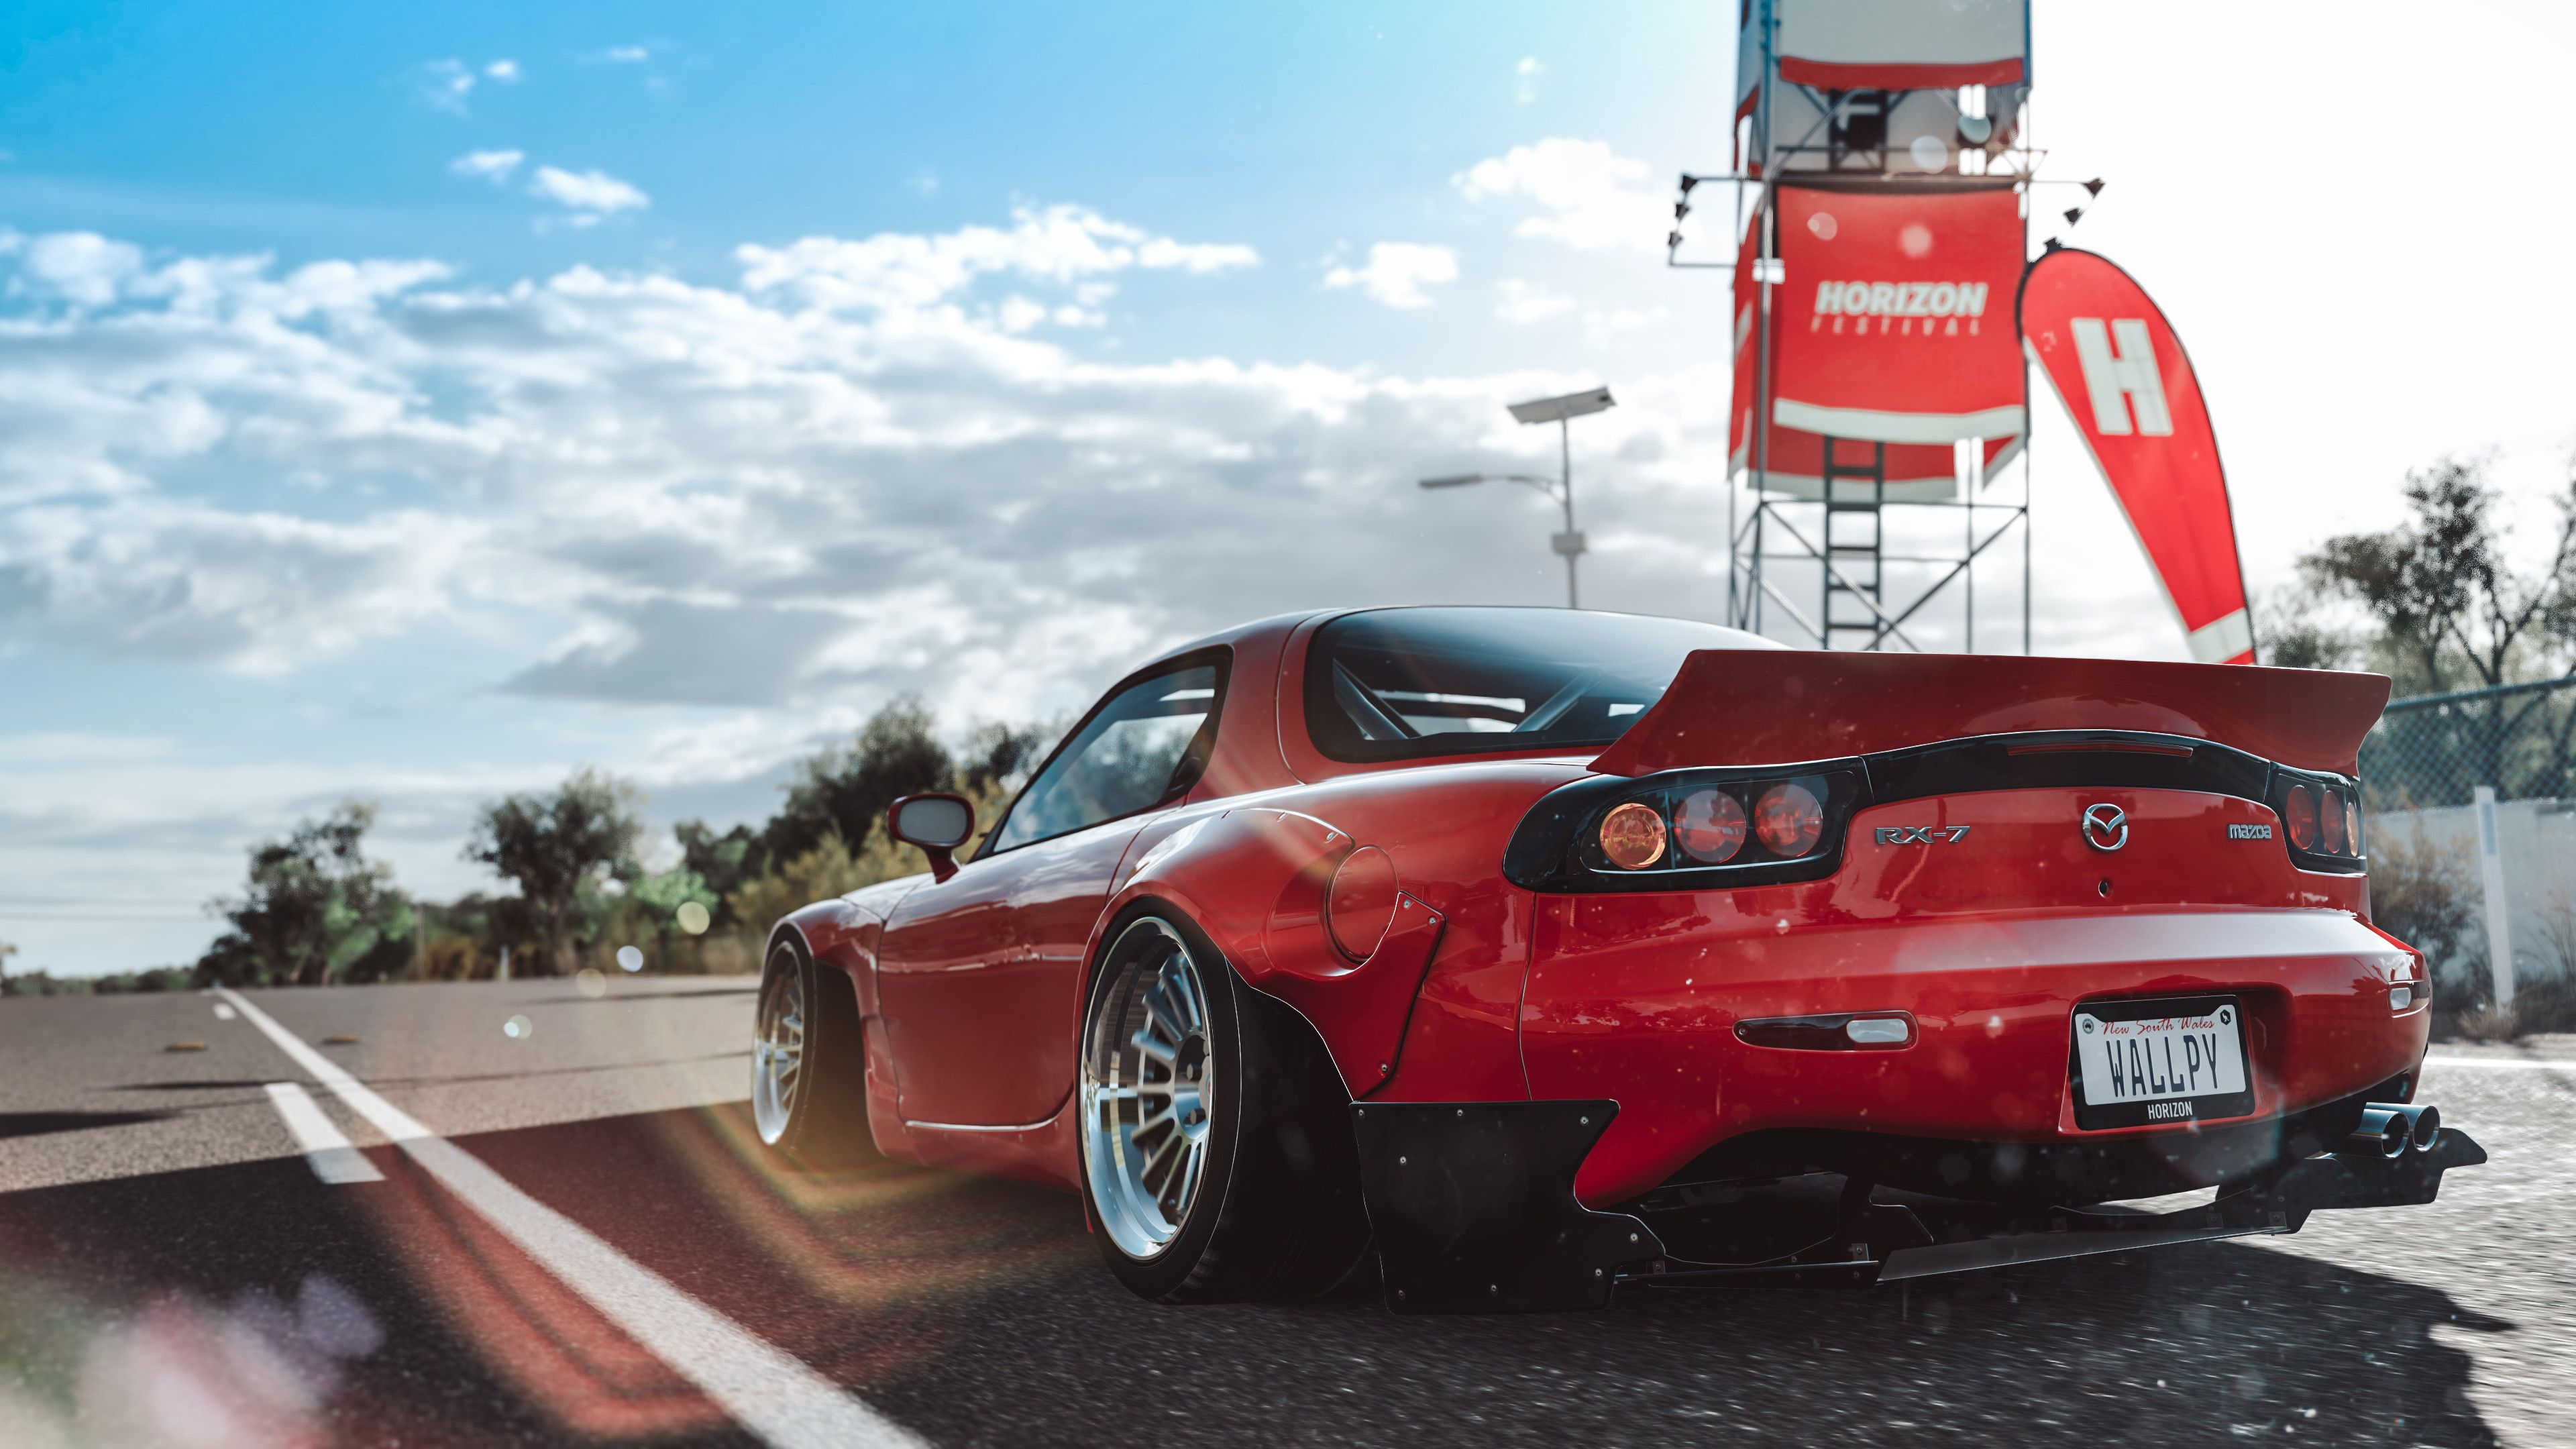 43 Rx7 Background On Wallpapersafari